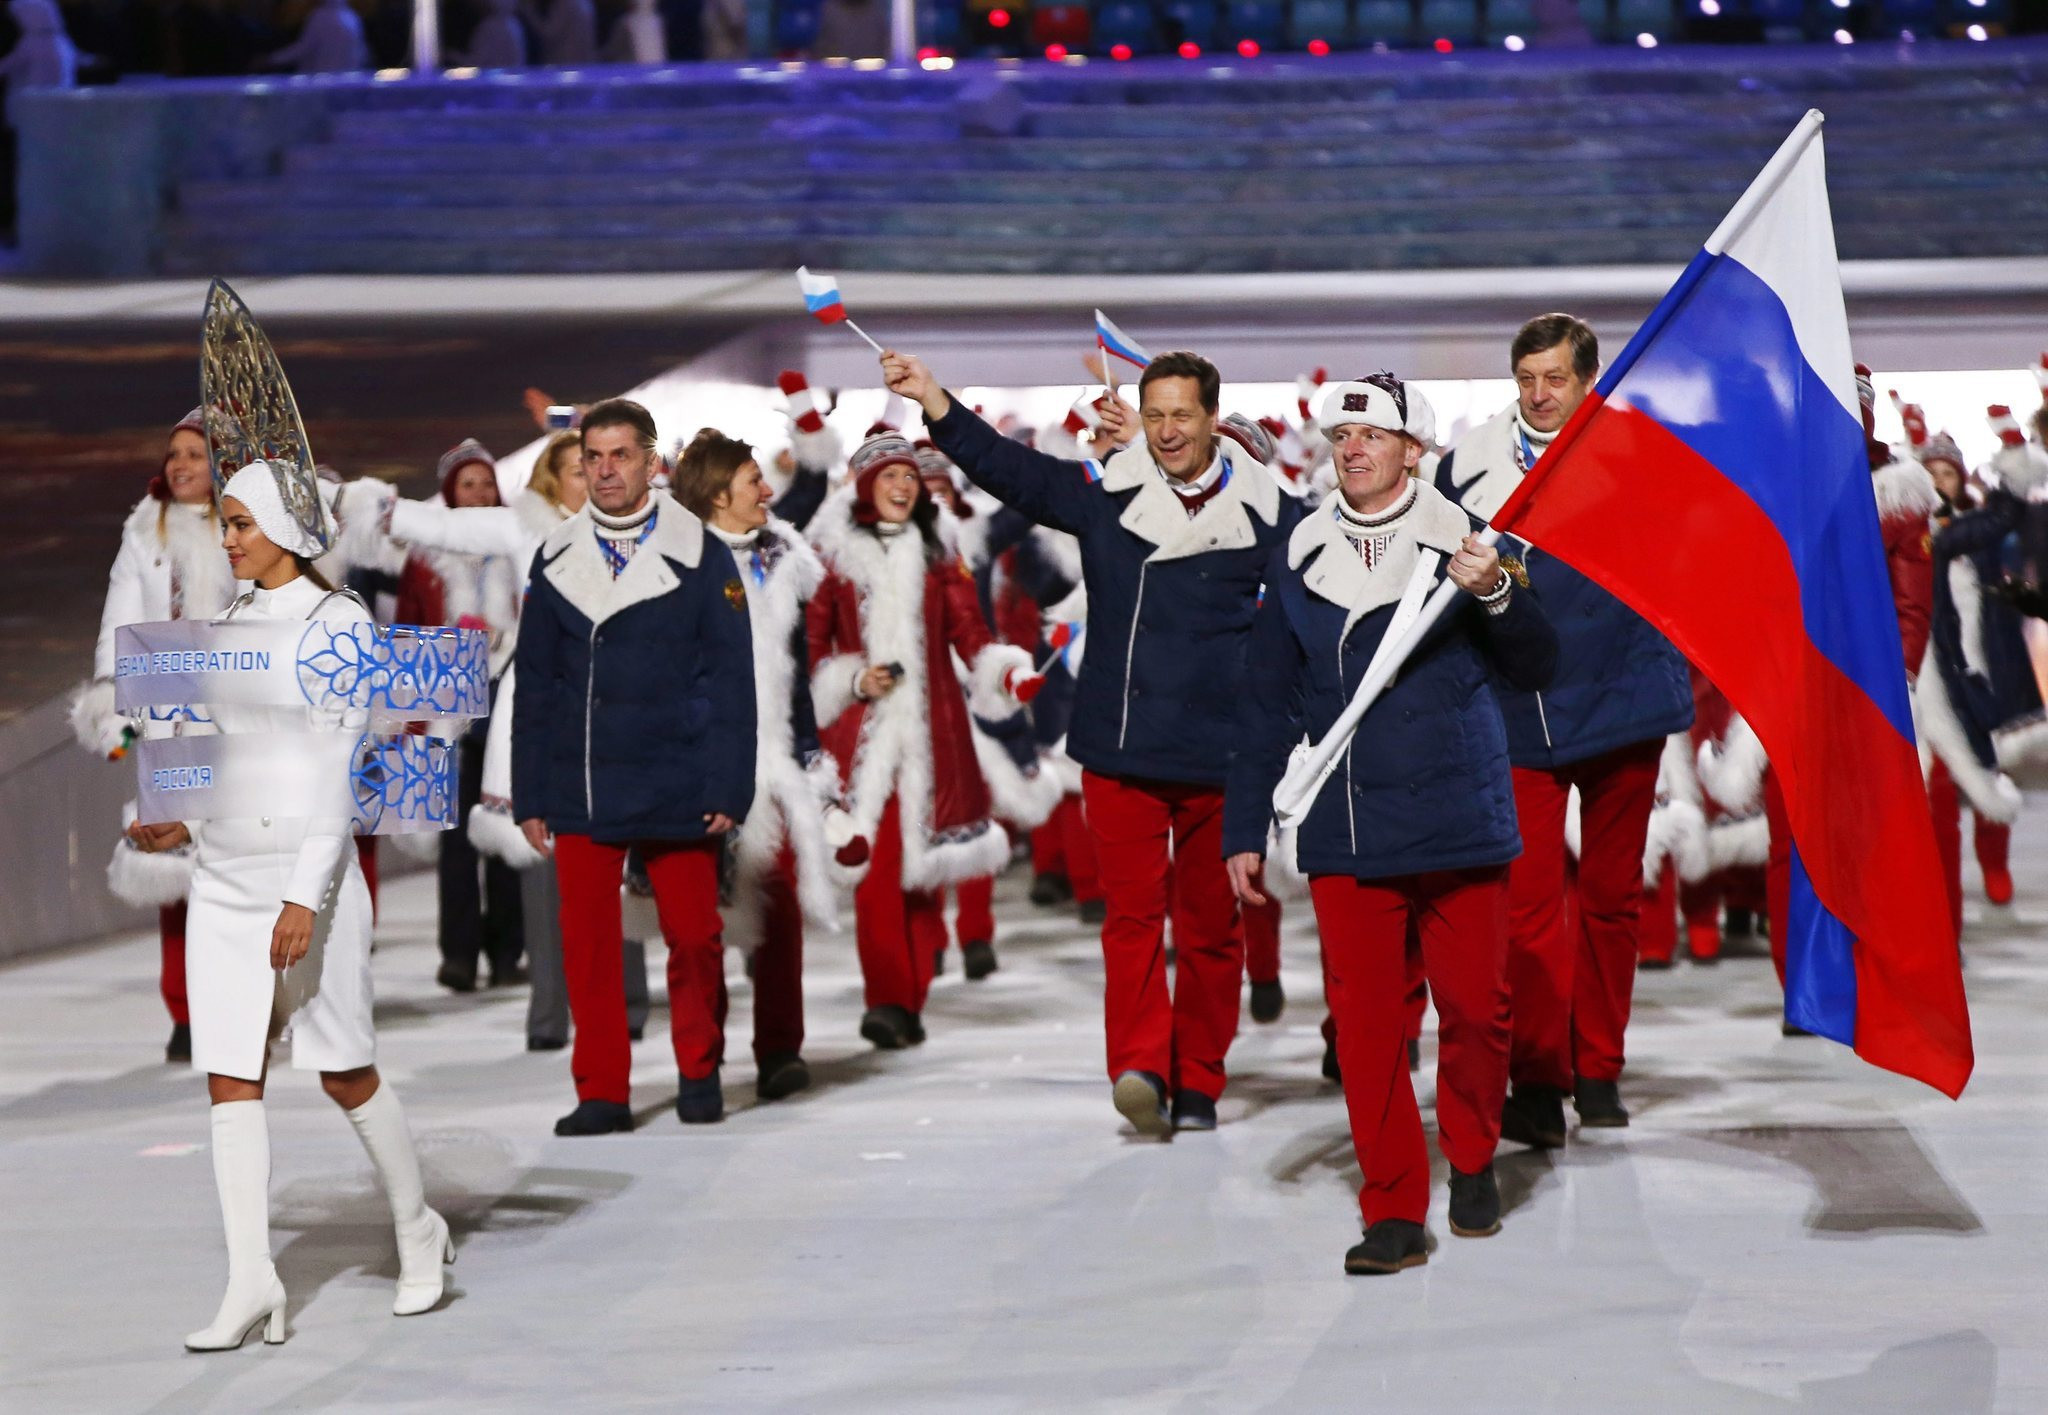 Russia will not be able to compete under their own flag at Pyeongchang 2018 ©Getty Images